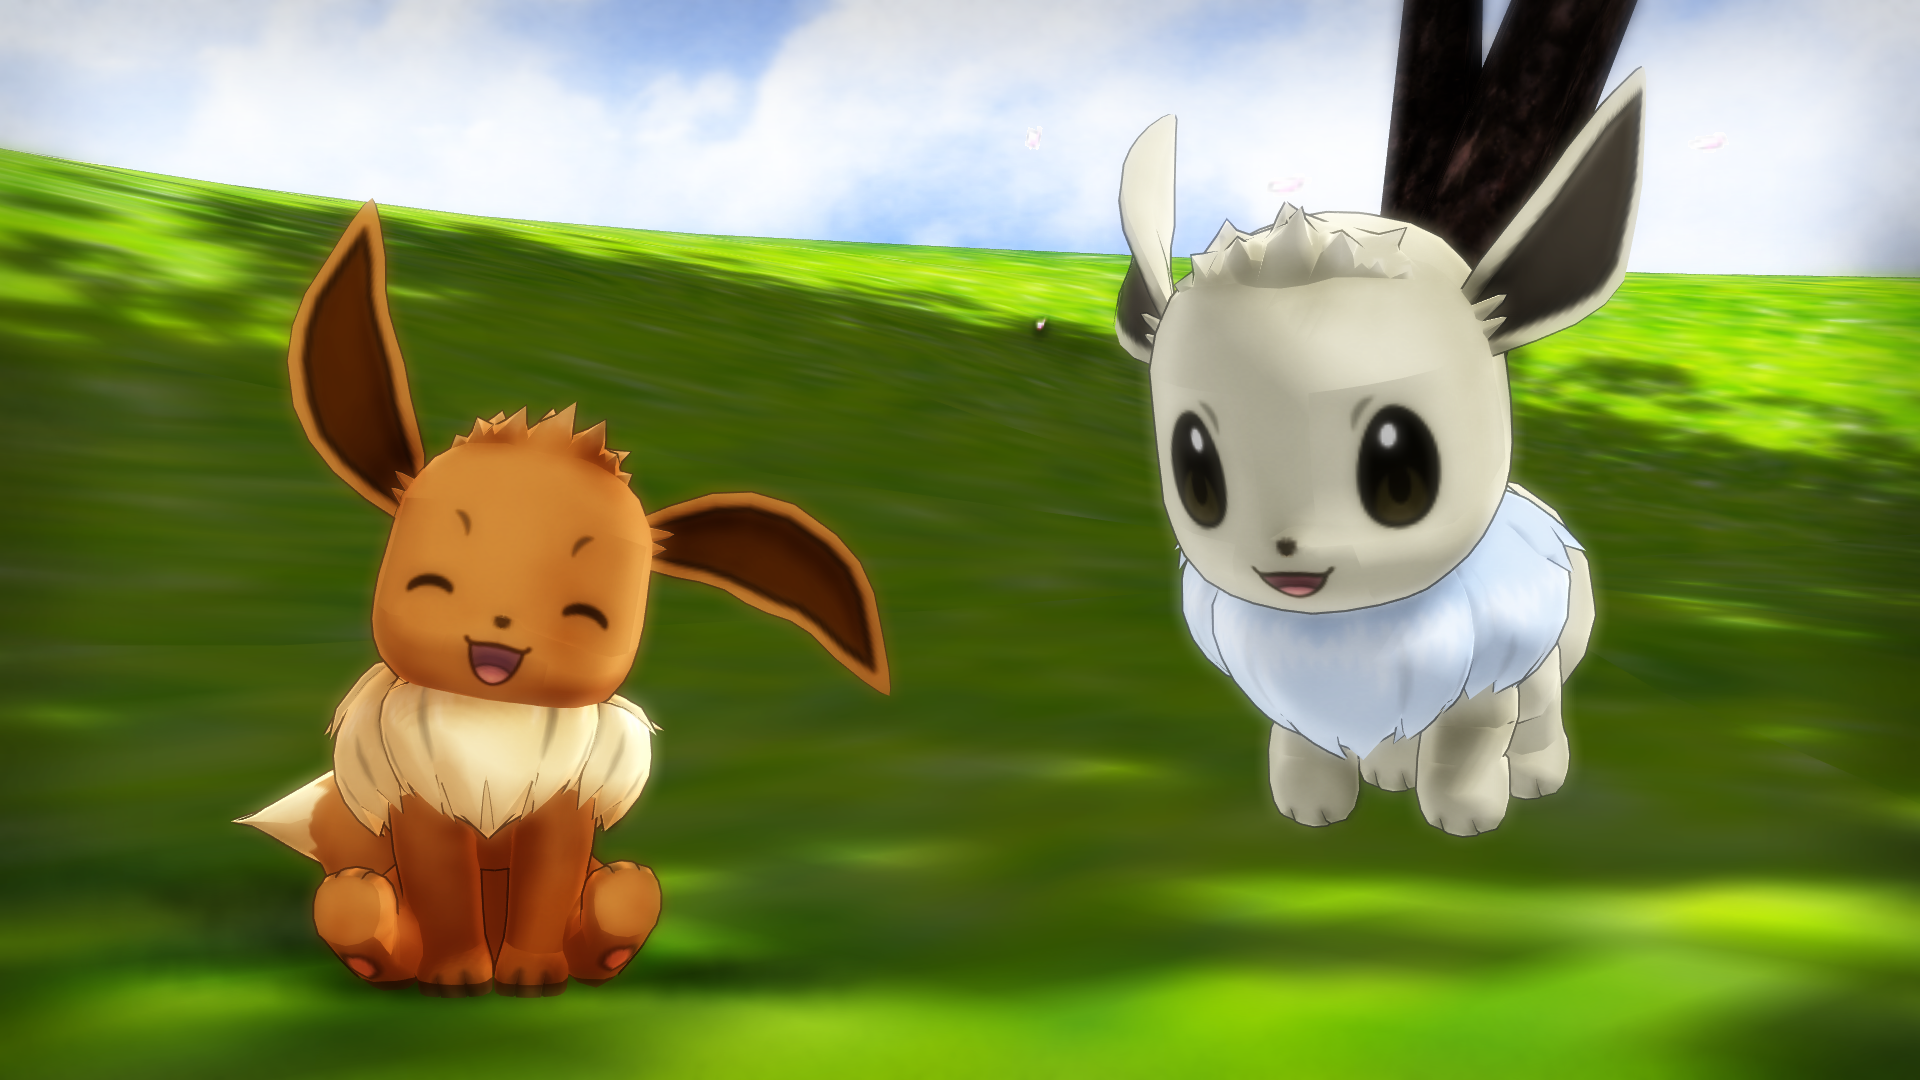 Mmd pk eevee dl by 2234083174 on deviantart - Pokemon 3d download ...